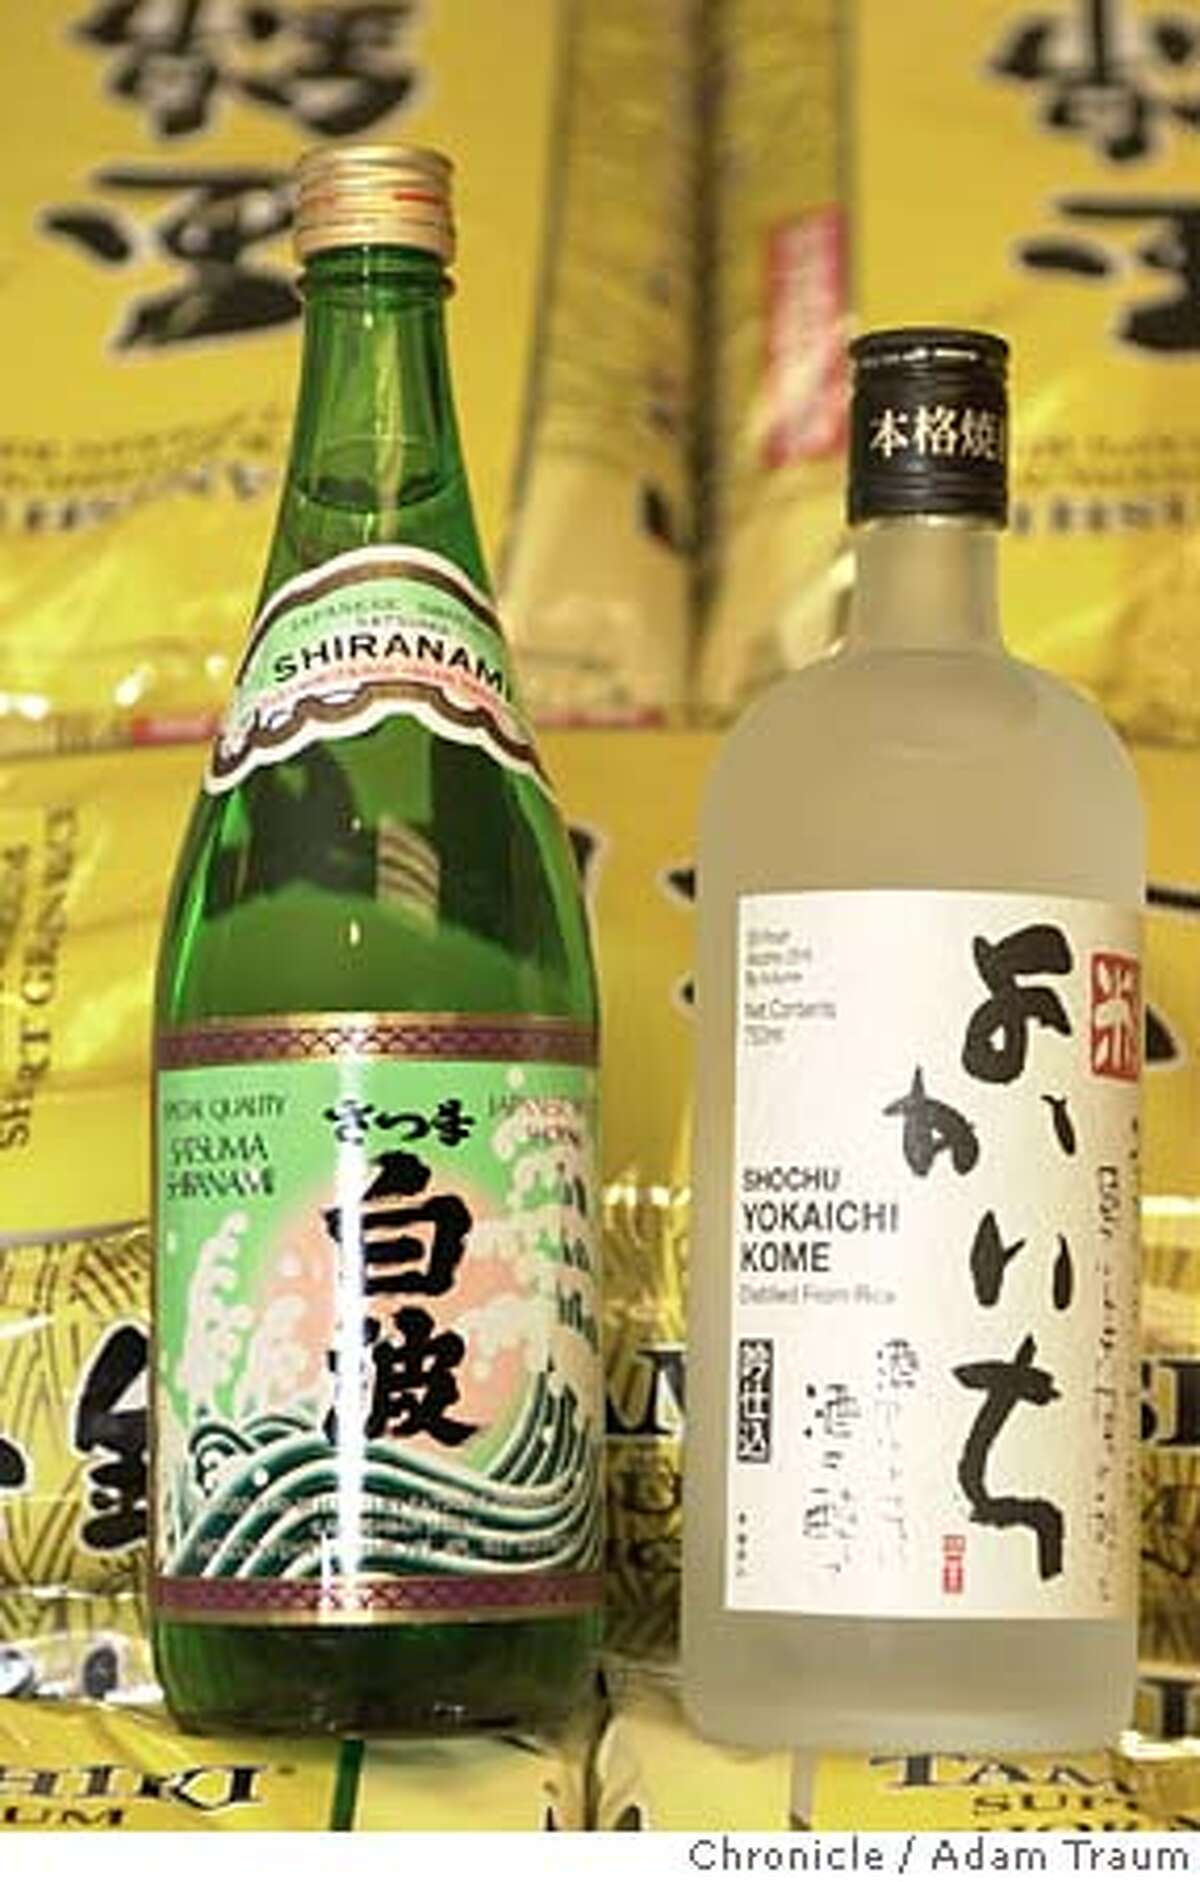 spirits29_027_AT.jpg Shochu, a Japanese distilled spirit, at the Nijiya Market in Japan Town. 7/11/04 in San Francisco, . Adam Traum / The Chronicle Ran on: 08-12-2004 Already popular in Japan, shochu is gaining steam in the United States. Unlike many distilled spirits, shochu tastes like what its made from: usually sweet potatoes, black sugar or grain.